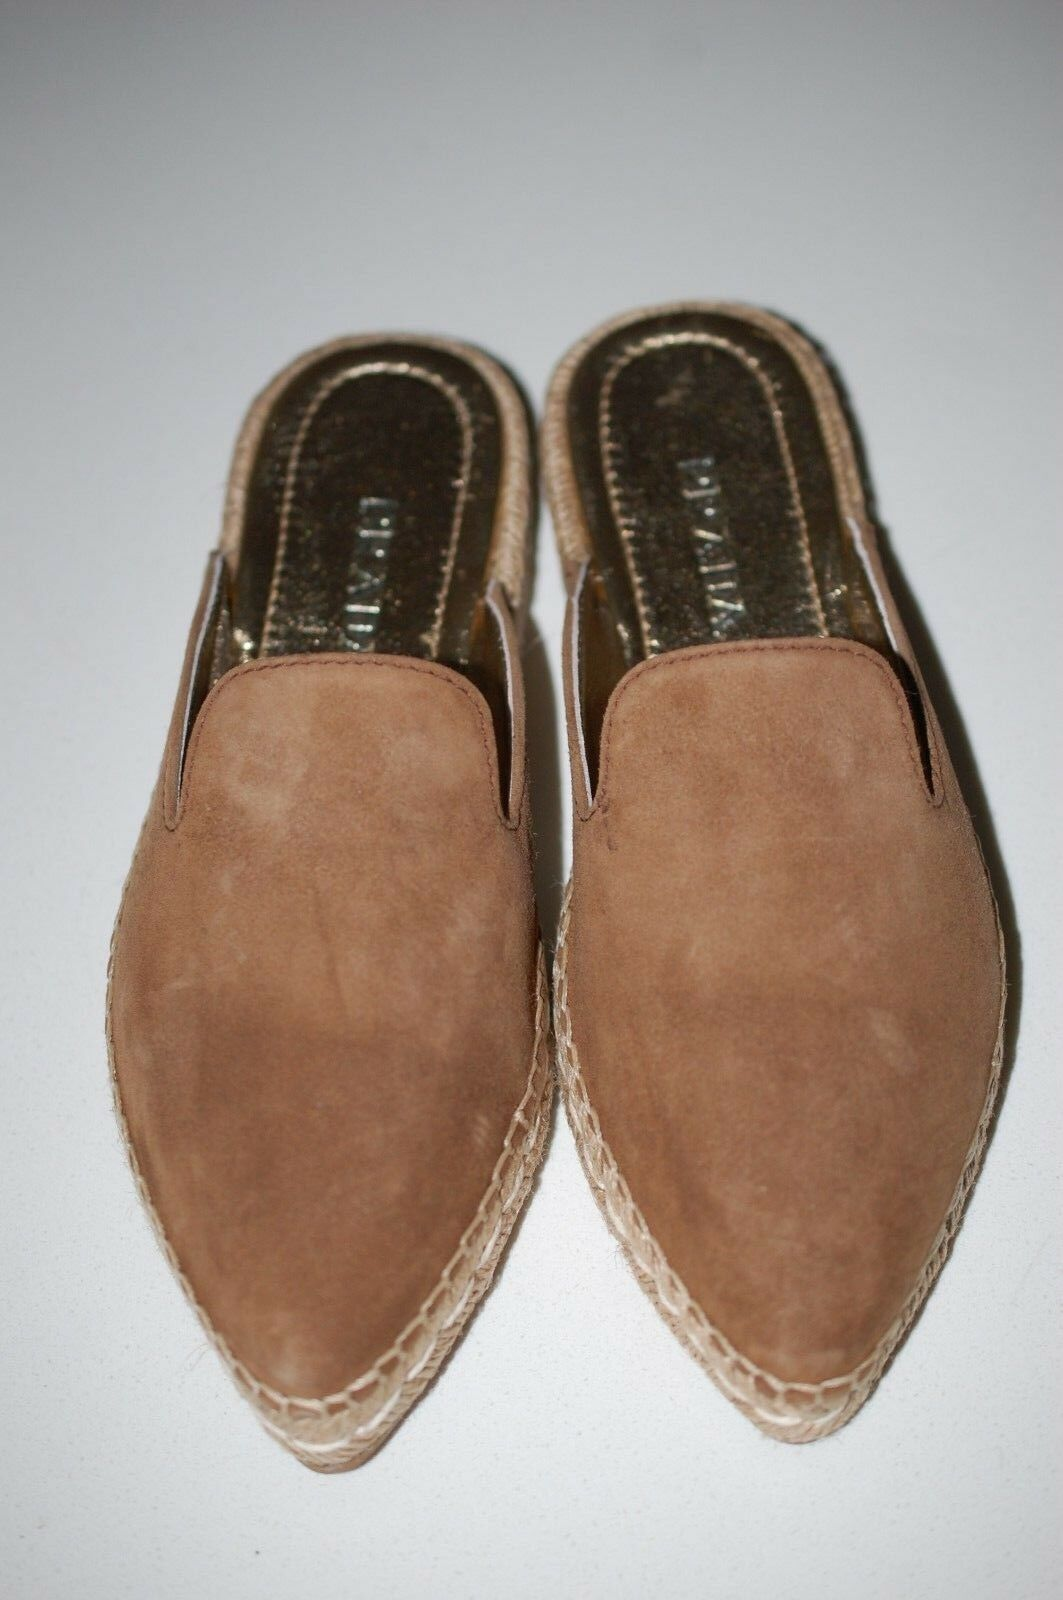 PRADA Tan Suede Espadrille Mule Point Slide Slipper Flat Sandal shoes 6 US 36 EU